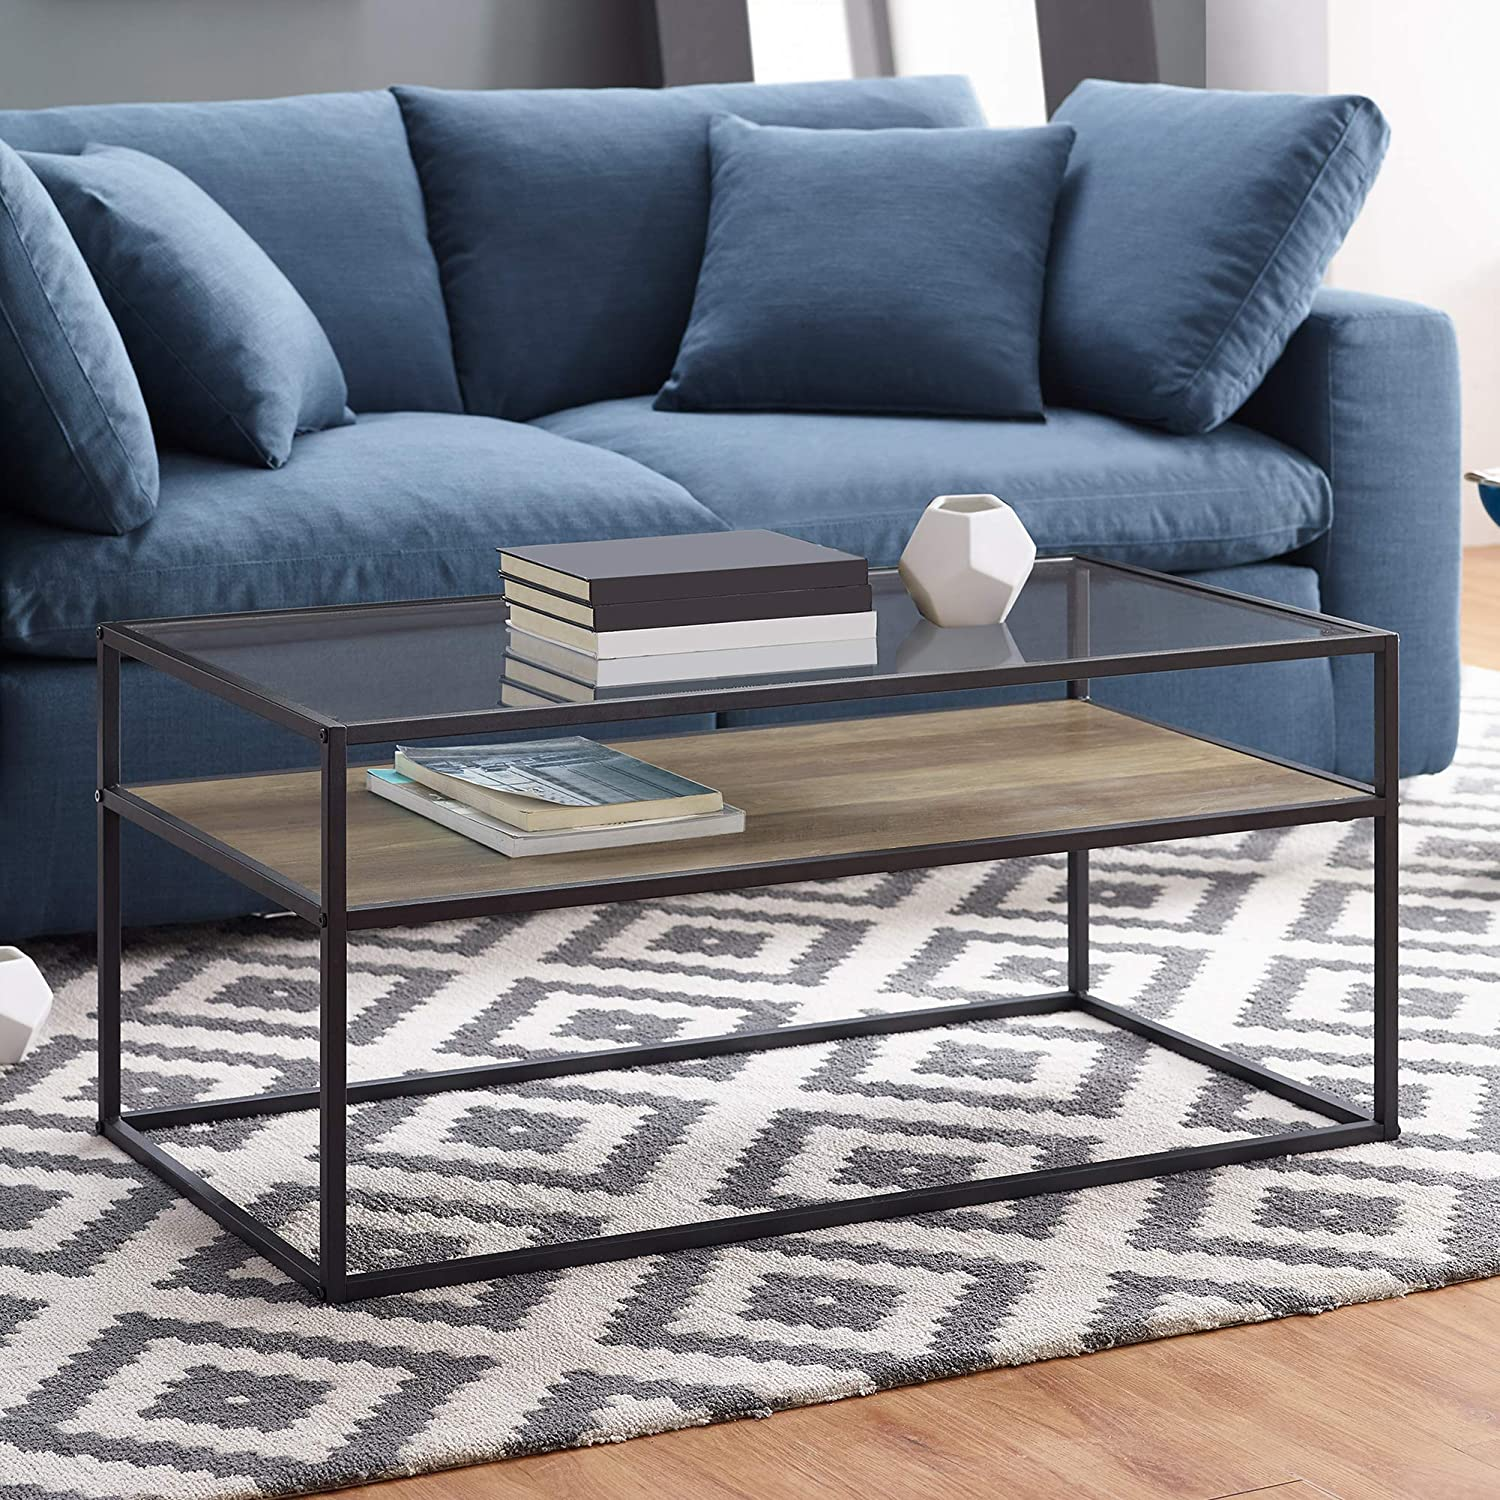 WE Furniture AZ40SWICTROST Modern Reversible Shelf Rectangle Coffee Accent Table Living Room, 40 Inch, Reclaimed Barnwood Brown/Grey